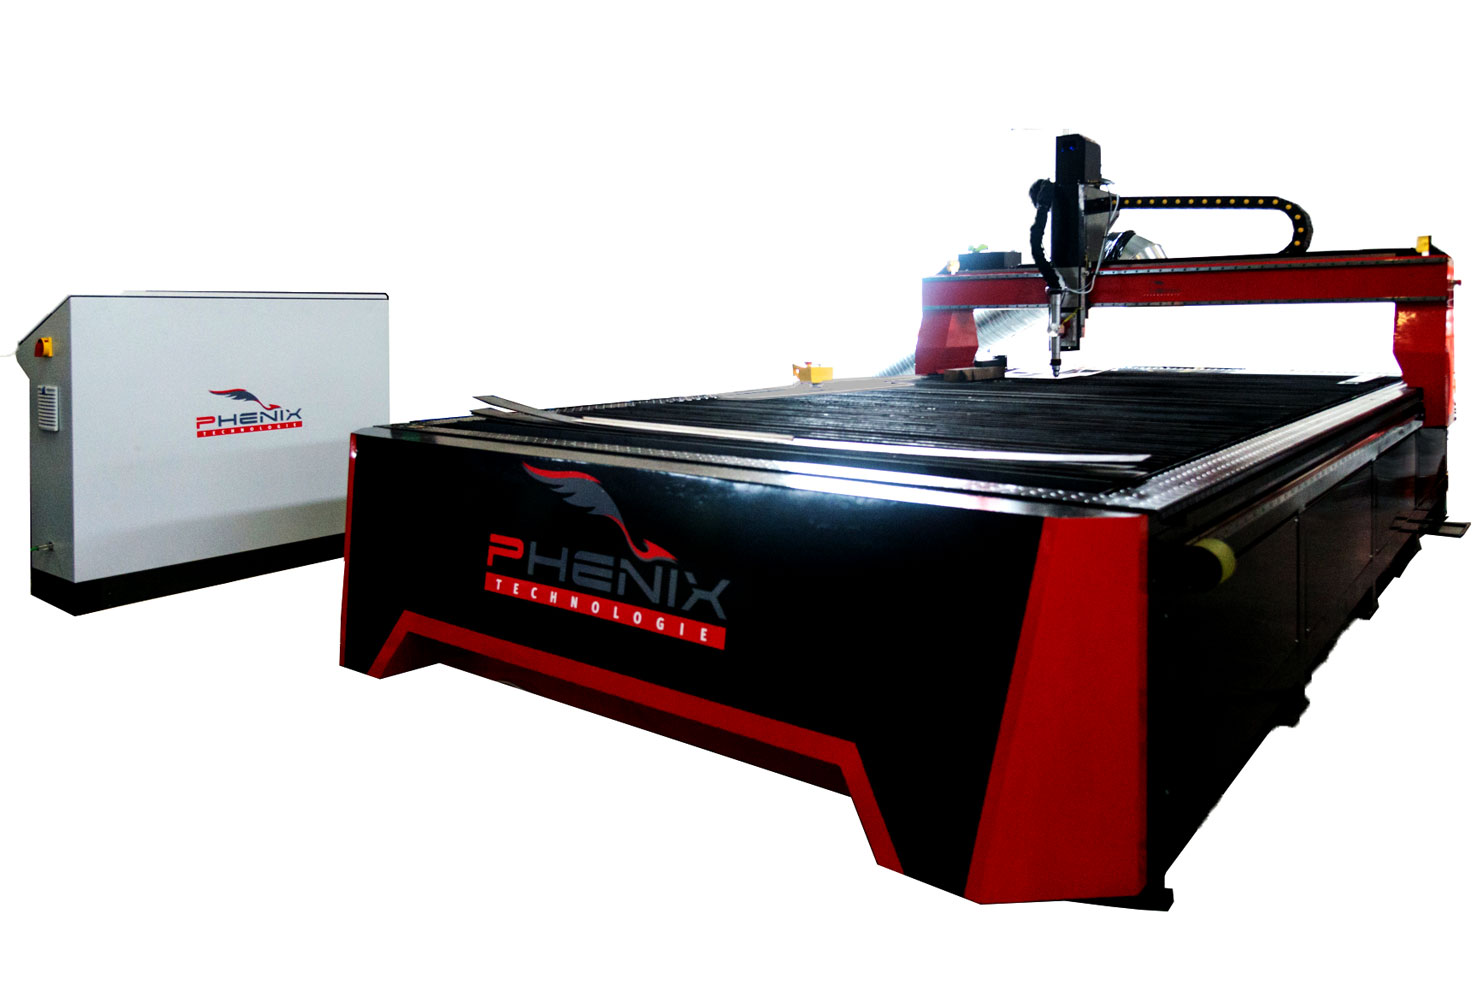 MDCUT cutting machine - MD Cut Plasma cutting machine